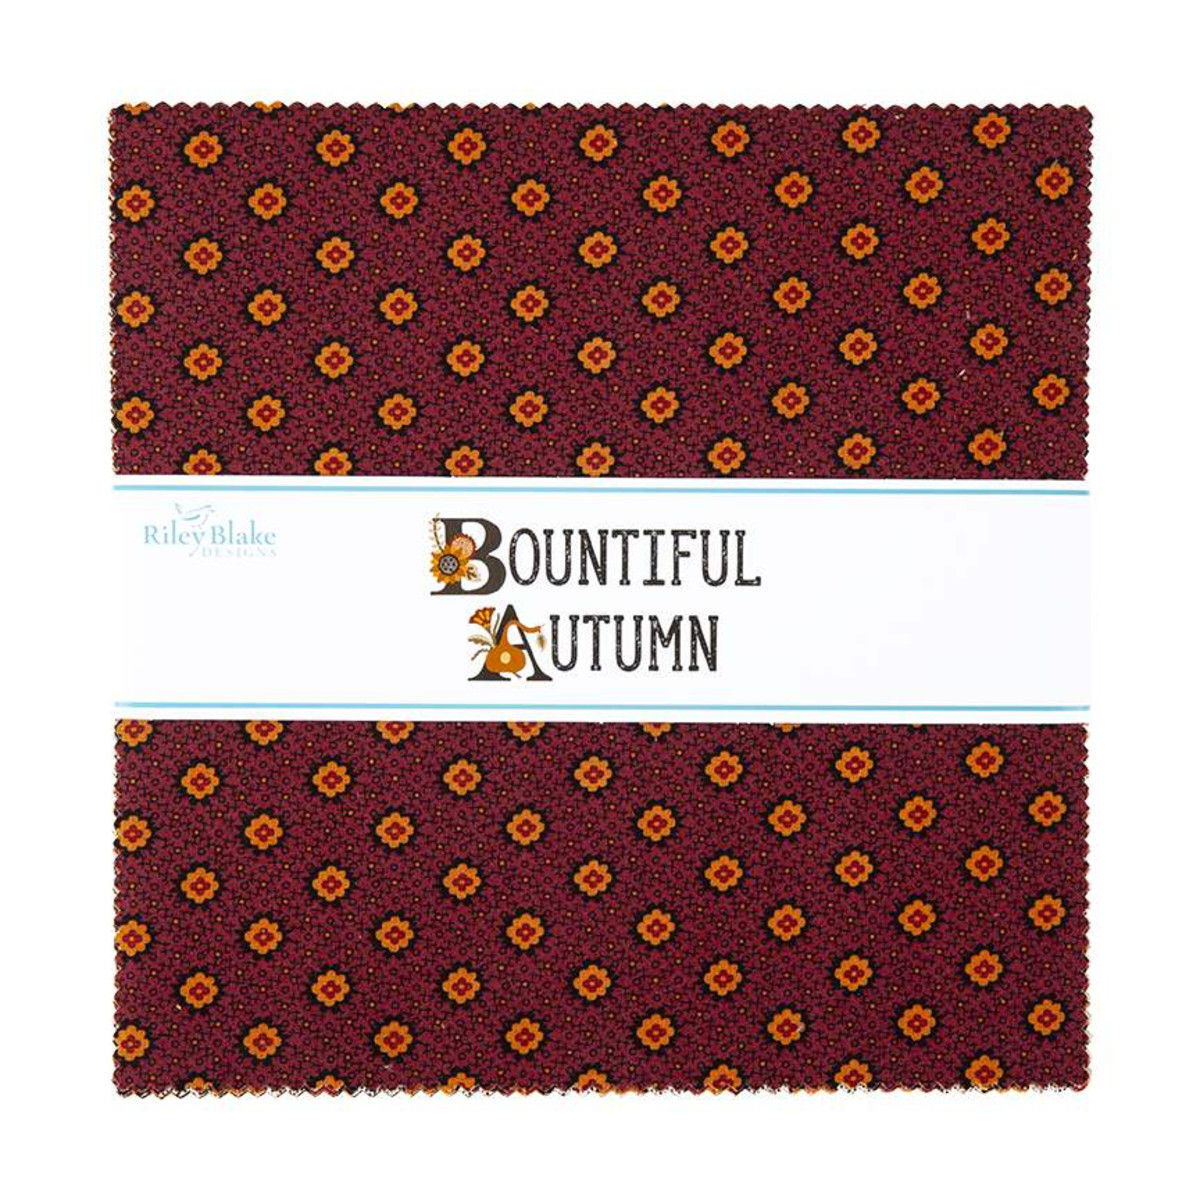 Riley Blake Layer Cake - Bountiful Autumn by Stacy West